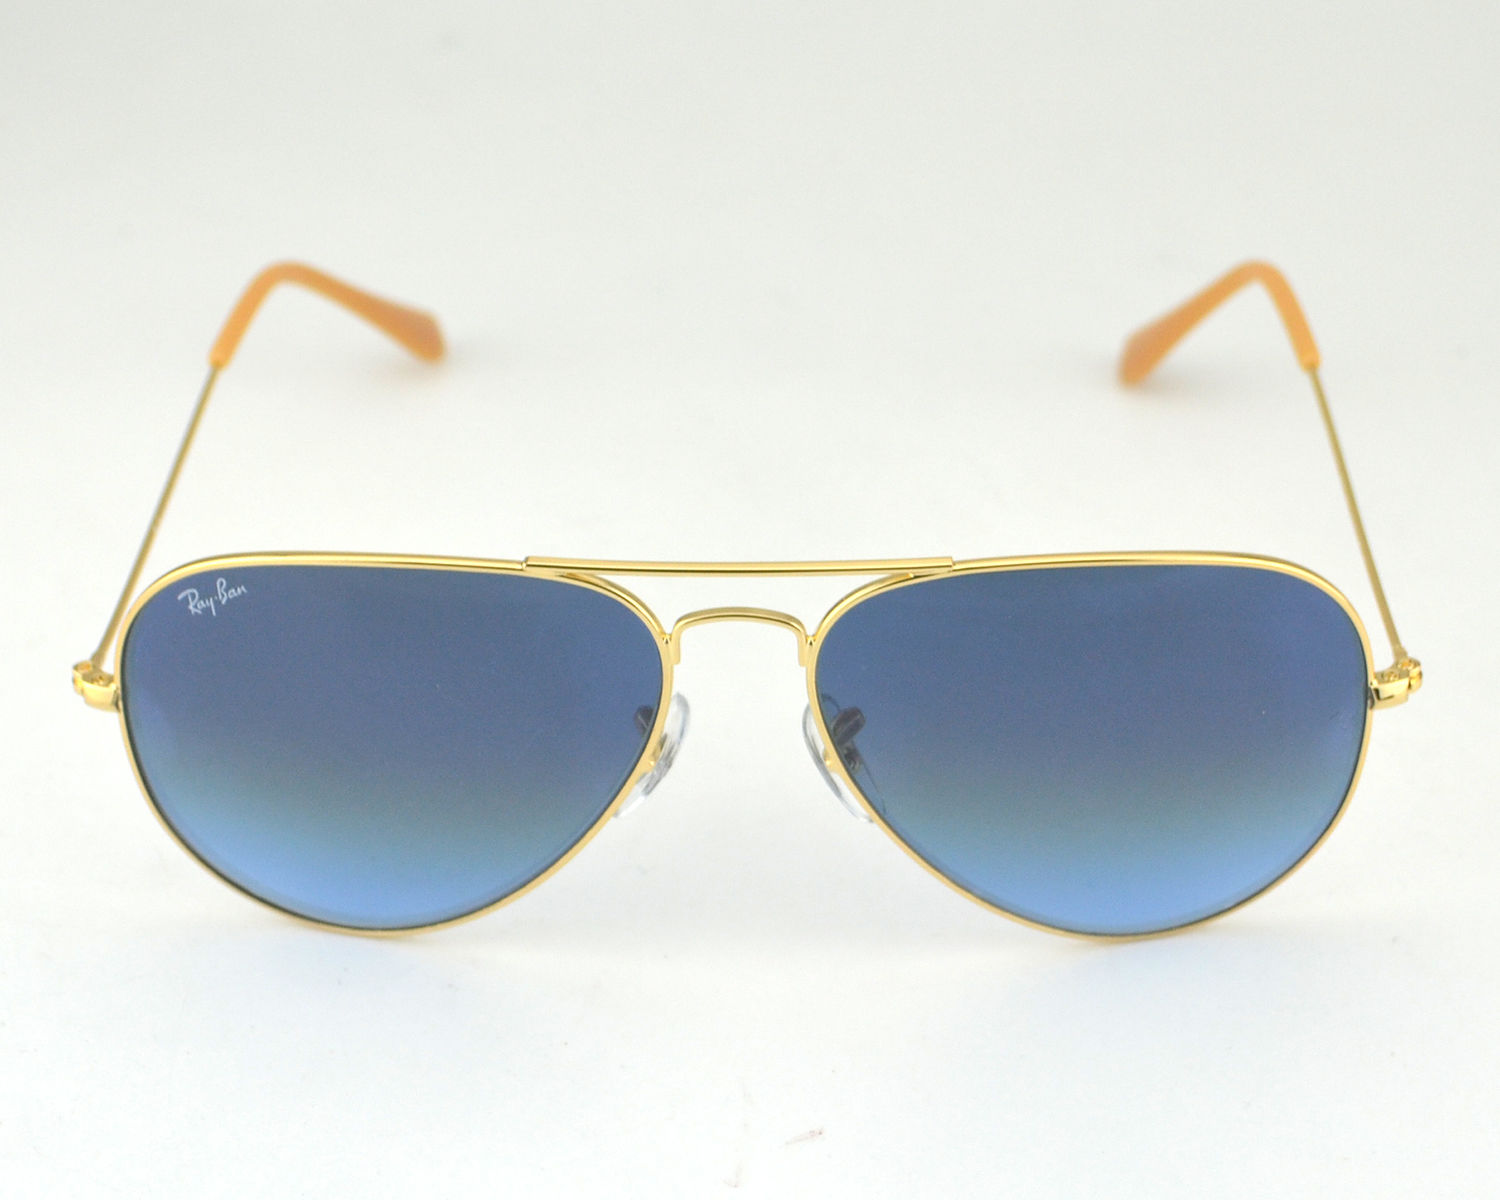 47021f5630 Ray Ban RB3026 Aviator Large Metal 001 3F Gold  Light Bule Gradient Lens  Sunglasses 62mm